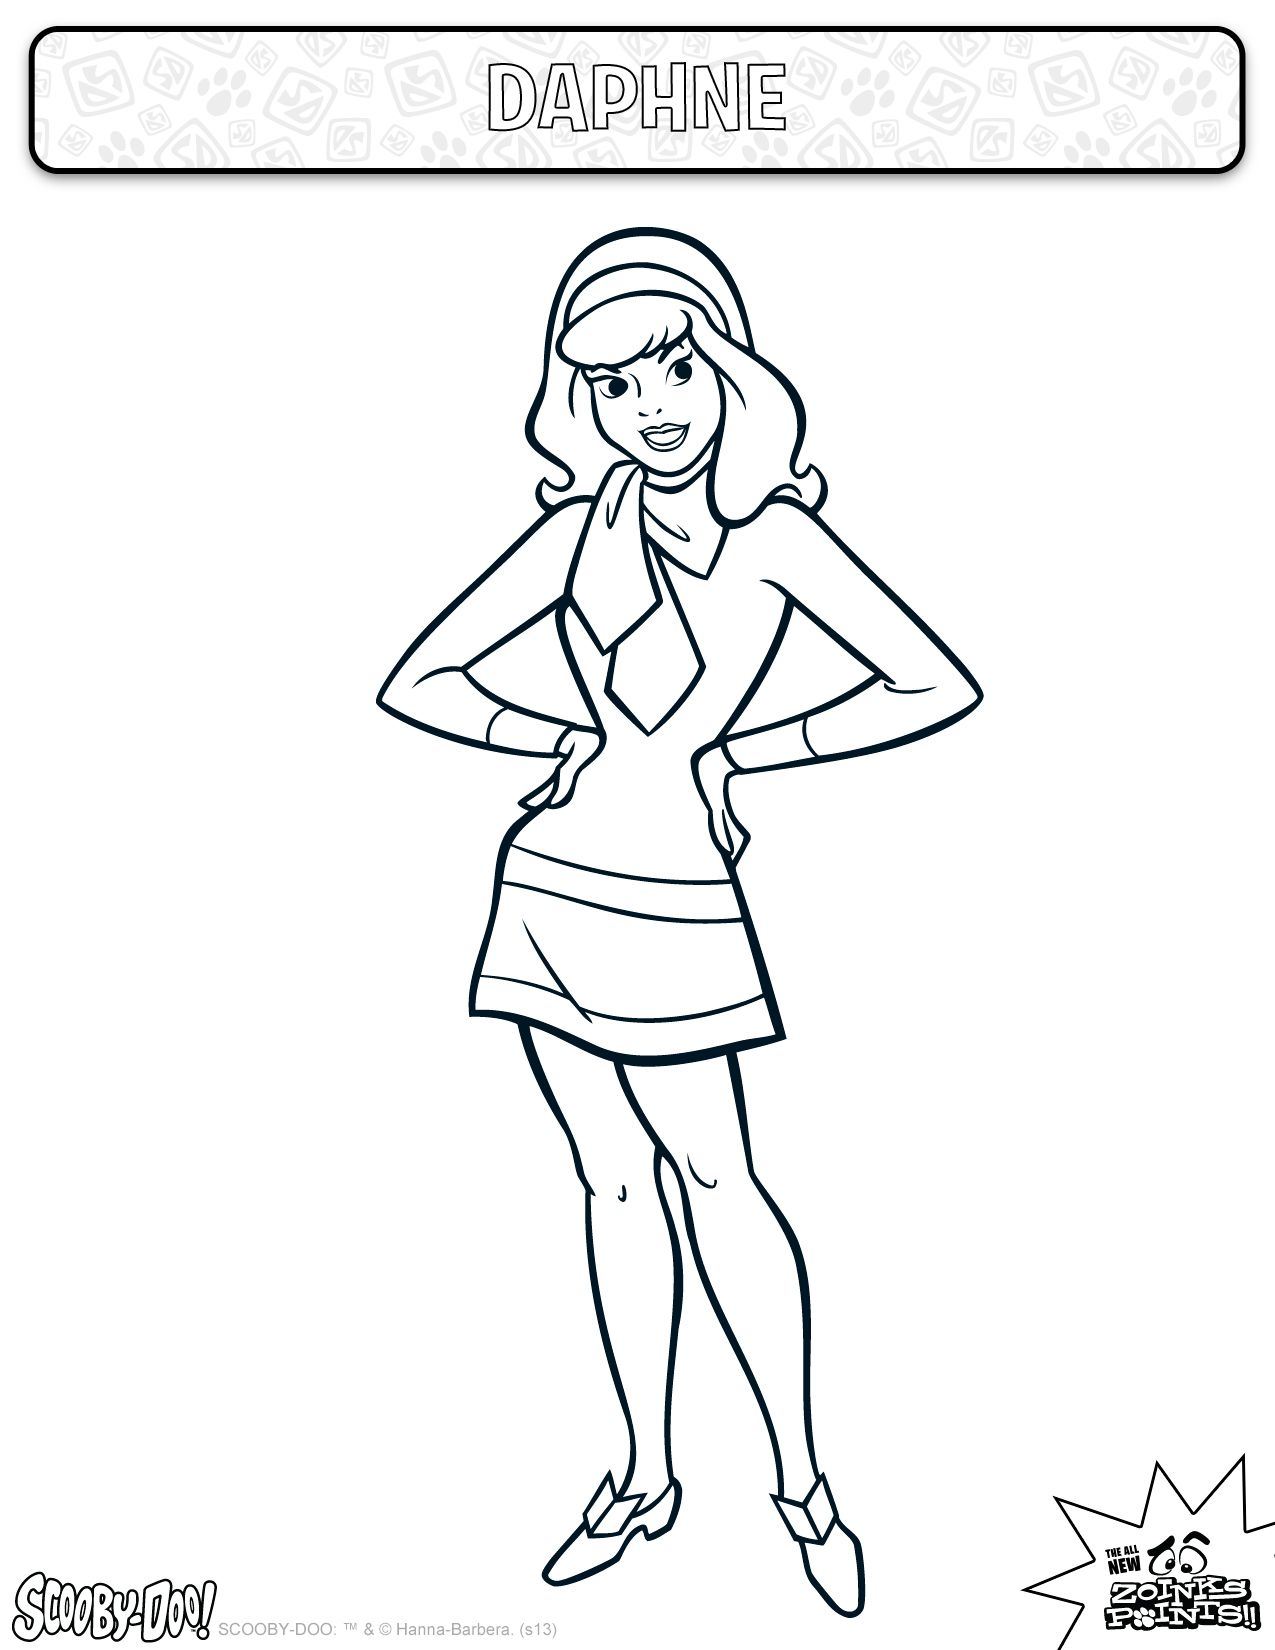 Daphne Coloring Sheet Actitivies Coloring Kids Scoobydoo